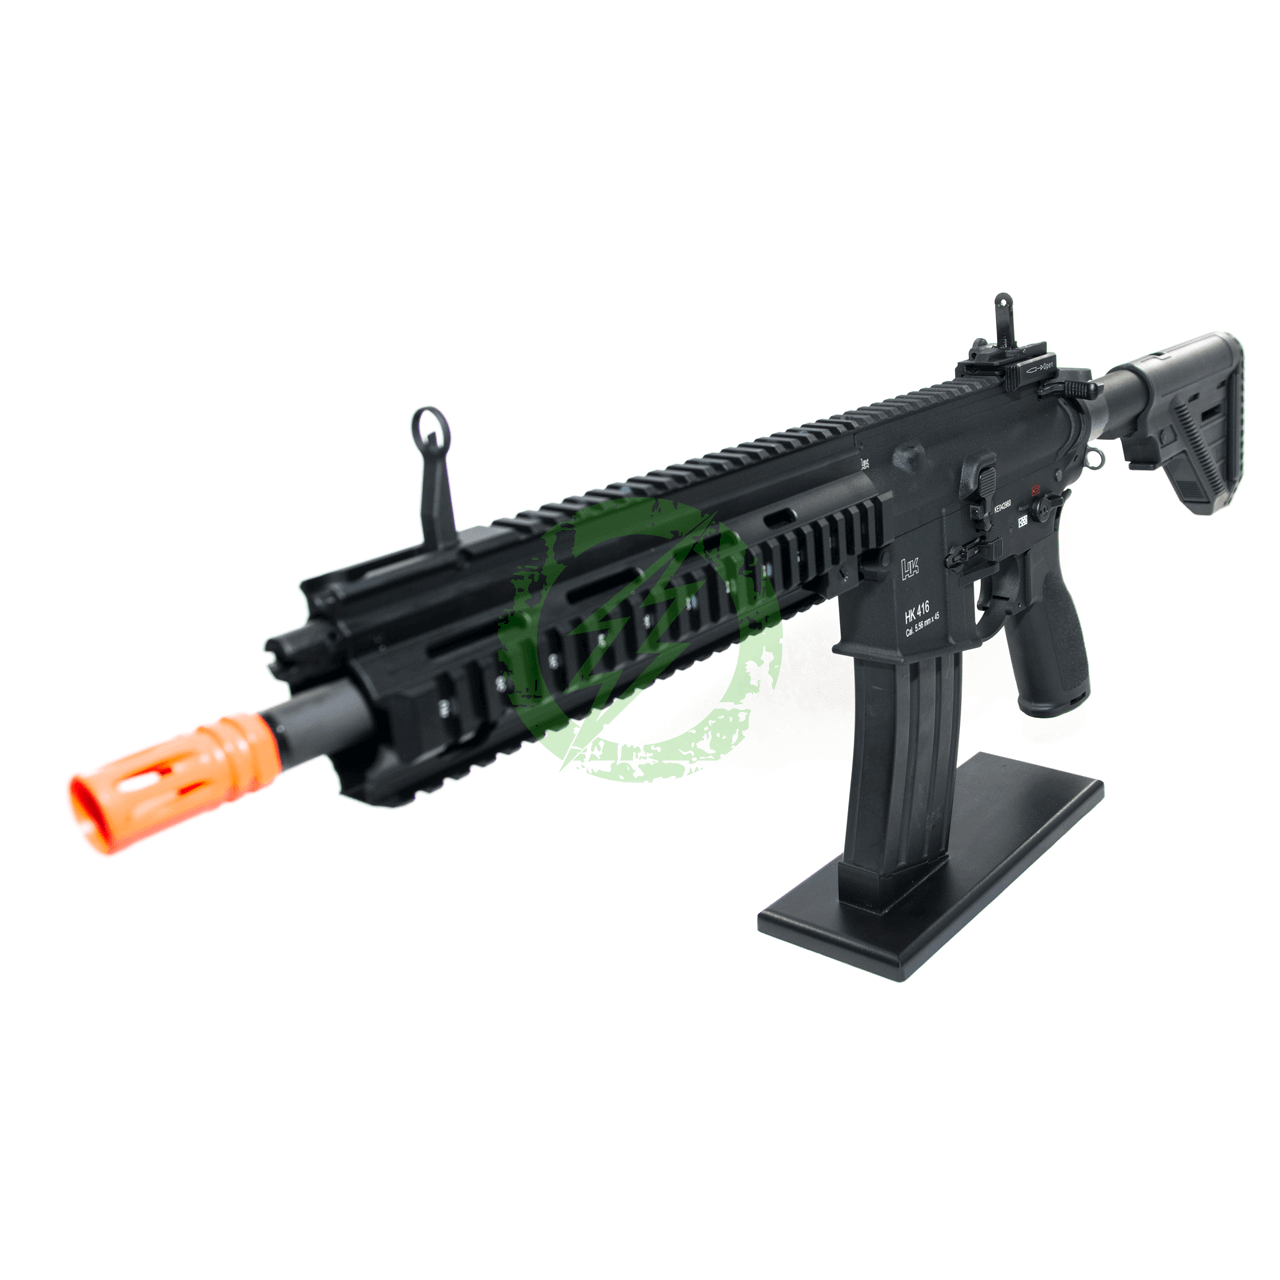 umarex - elite force hk 416a5 aeg with avalon gearbox (black)